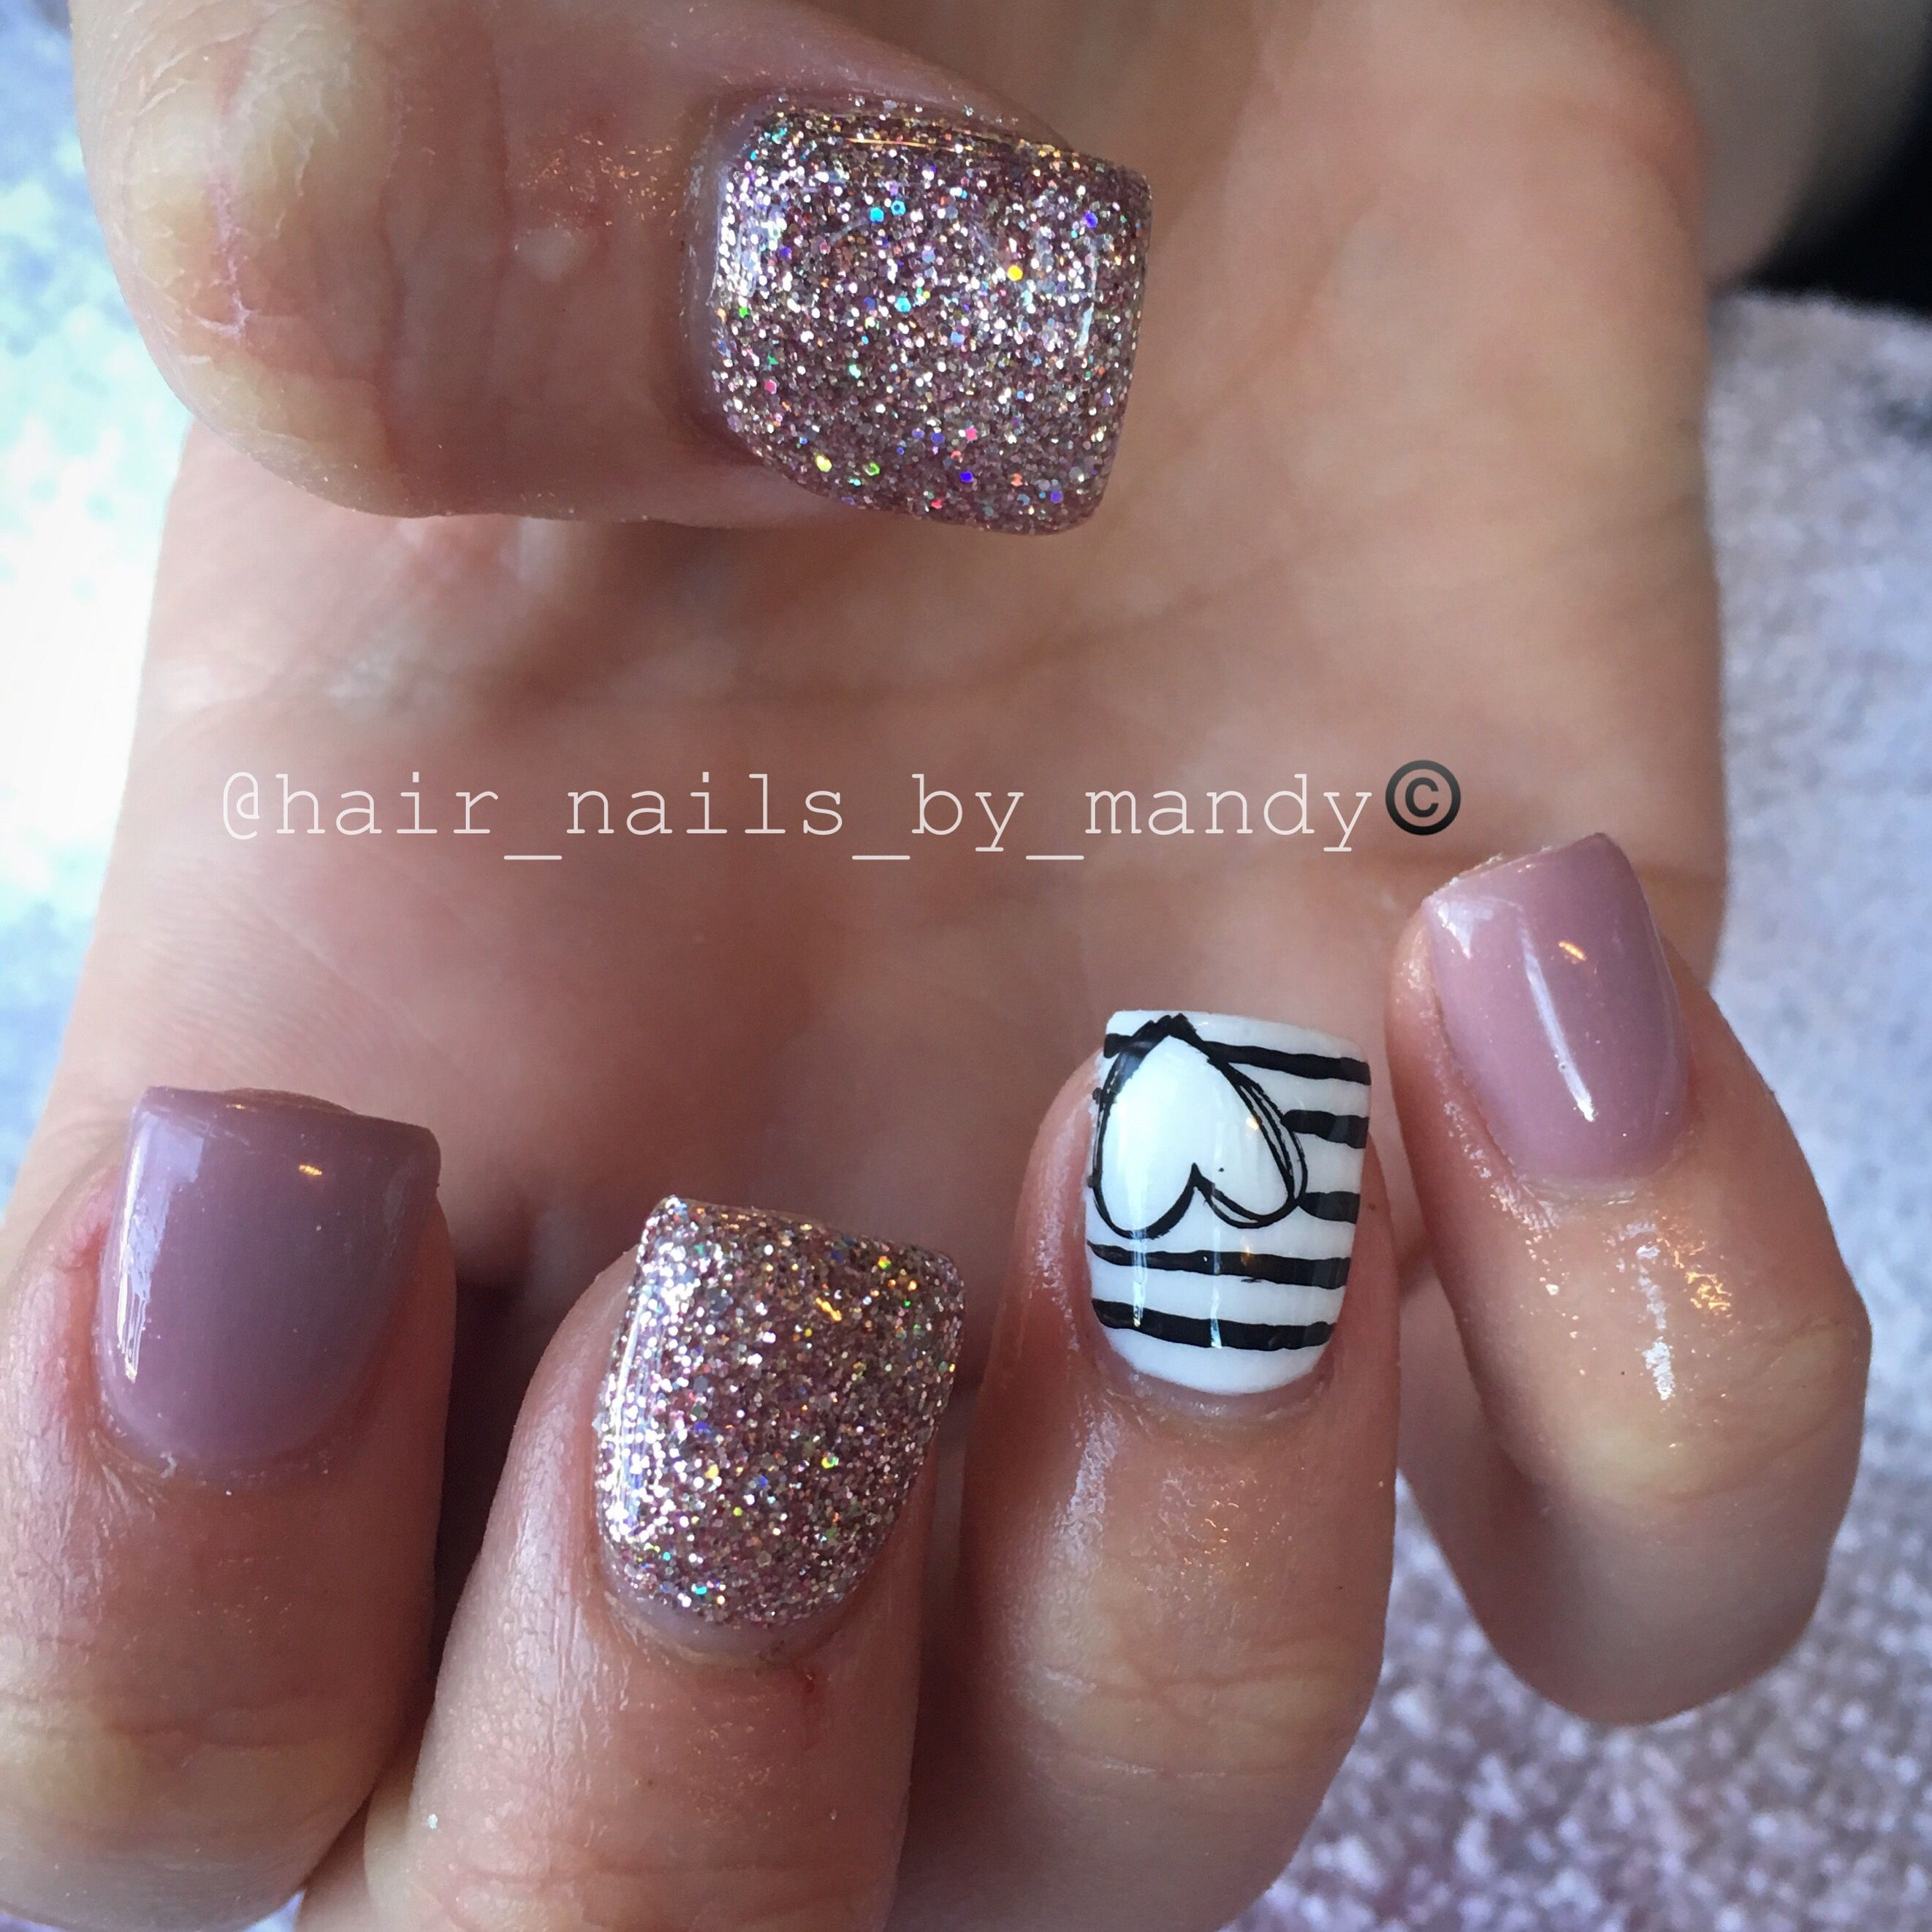 Pin by scarlet connor on Nails | Pinterest | Makeup, Nail nail and ...